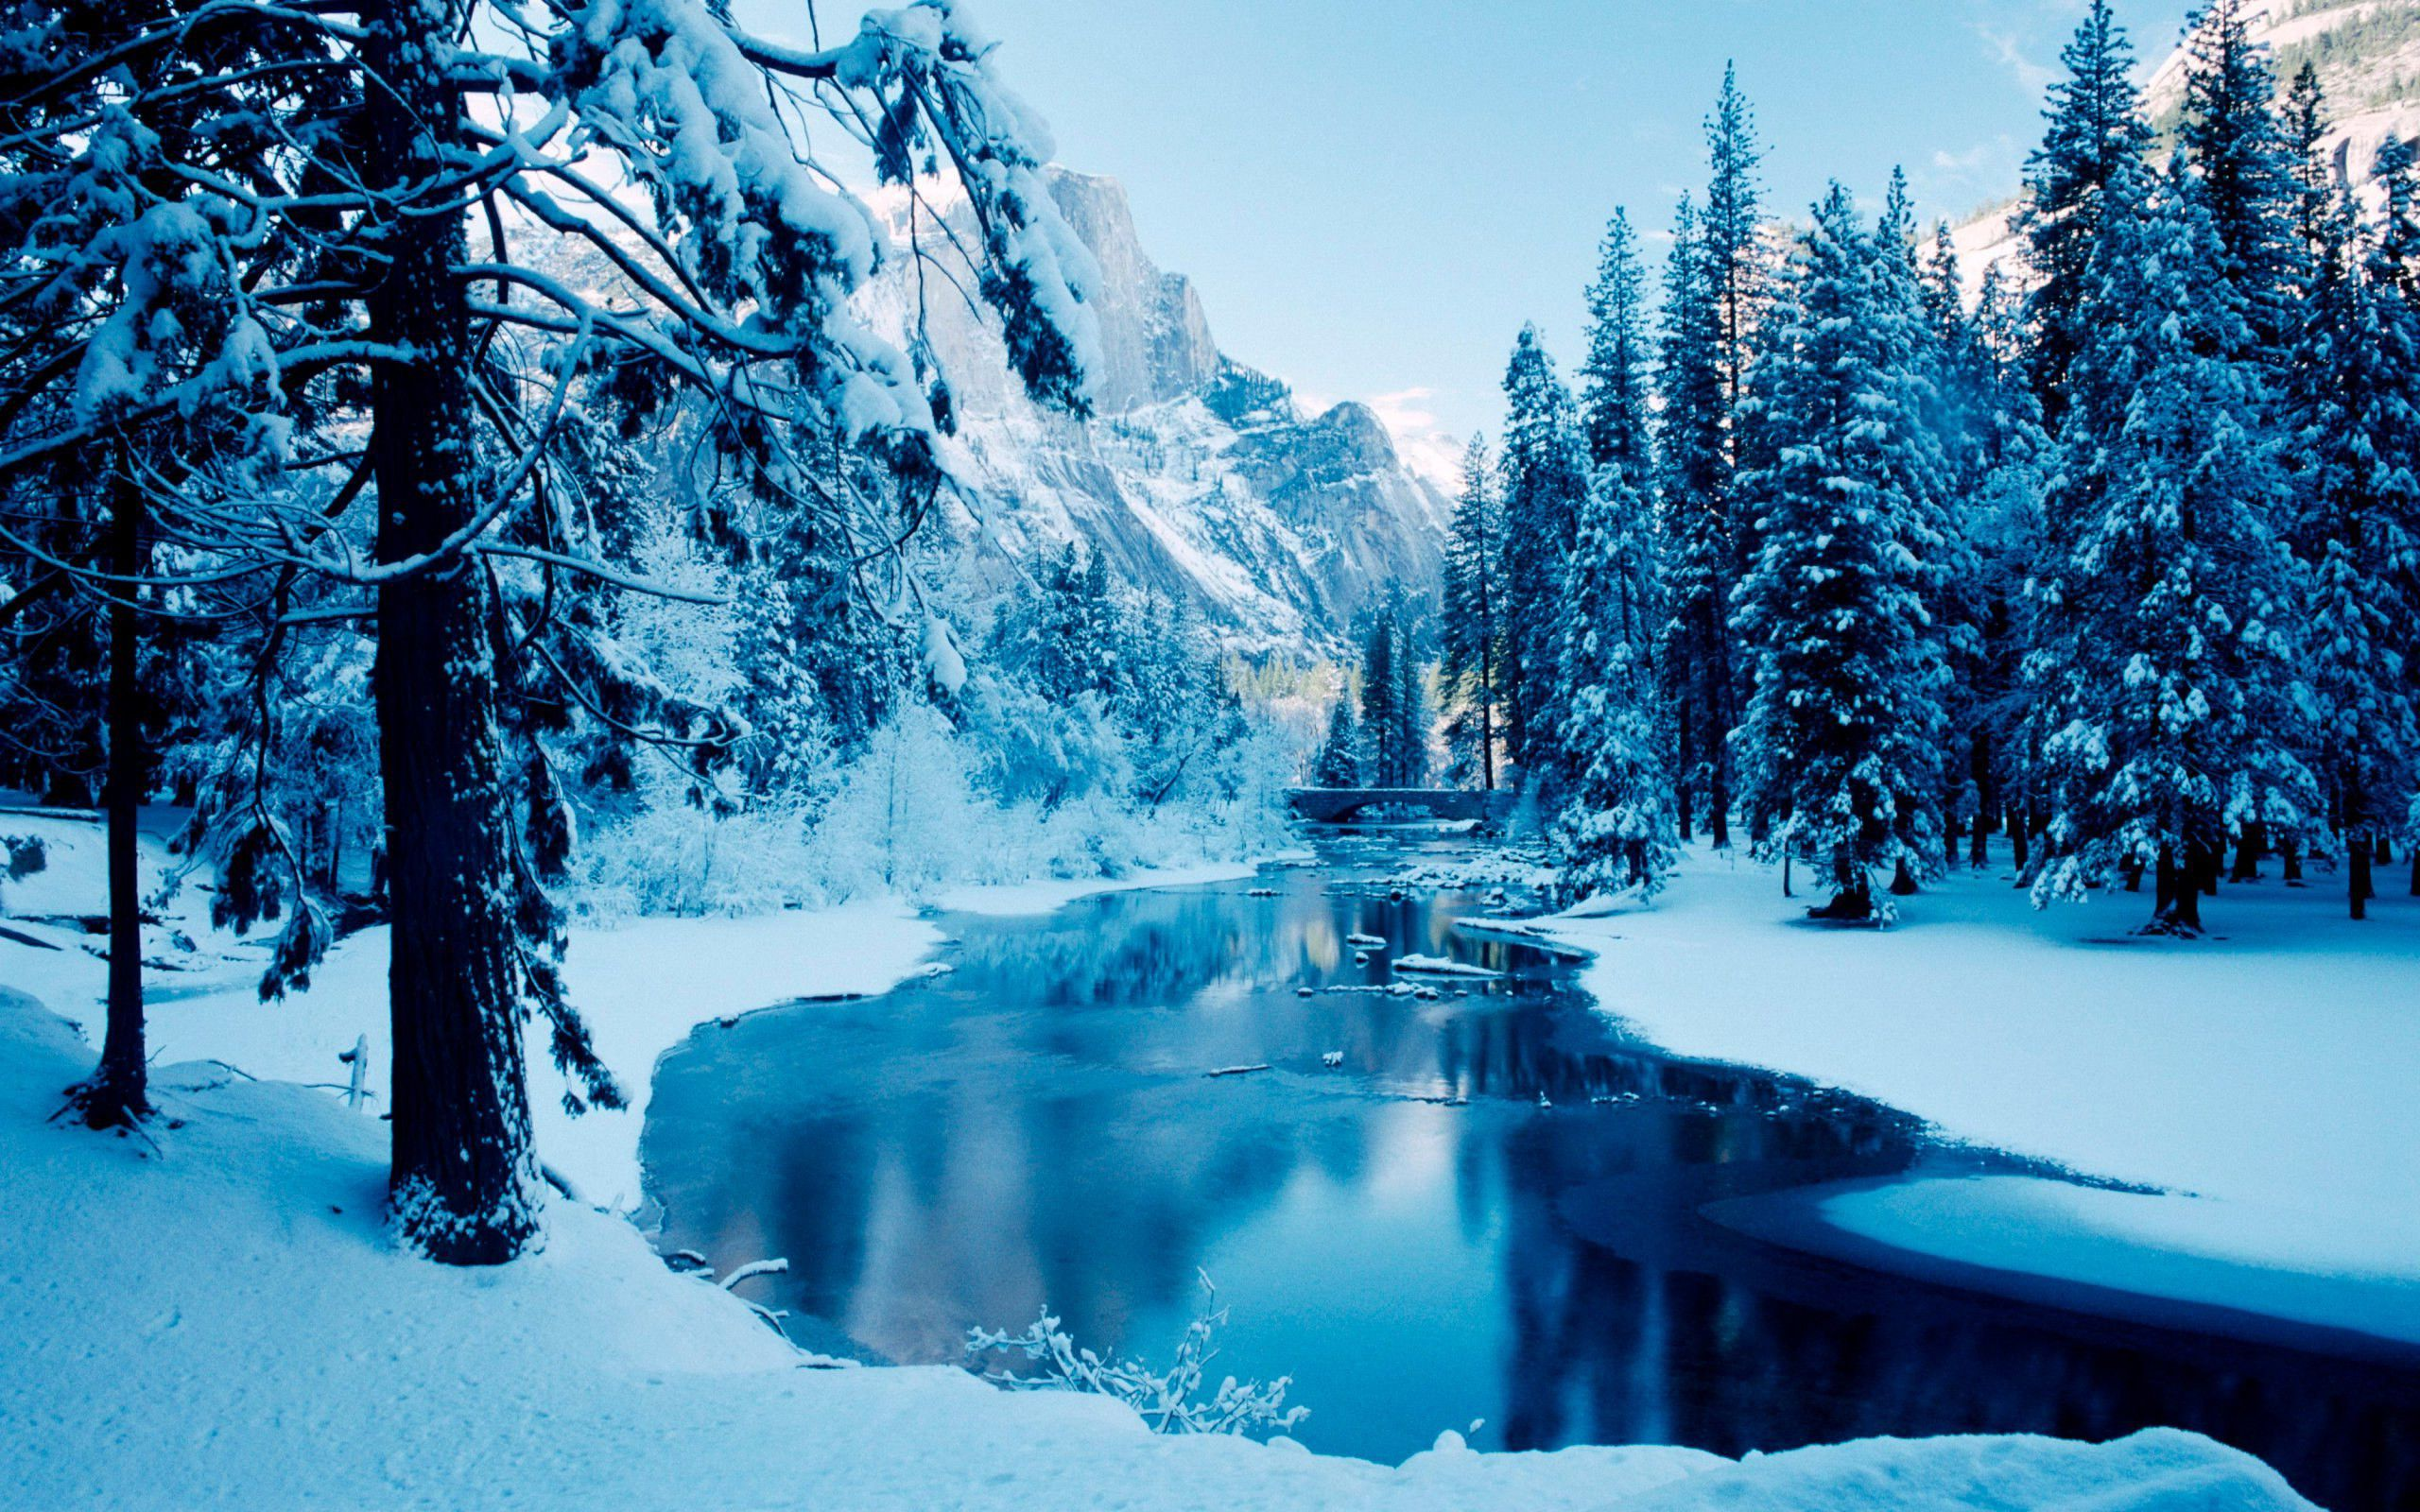 Wallpaper Collection 37 Best Free Hd Winter Desktop Backgrounds Background To Download Pc In 2020 Winter Wallpaper Hd Winter Background Winter Nature